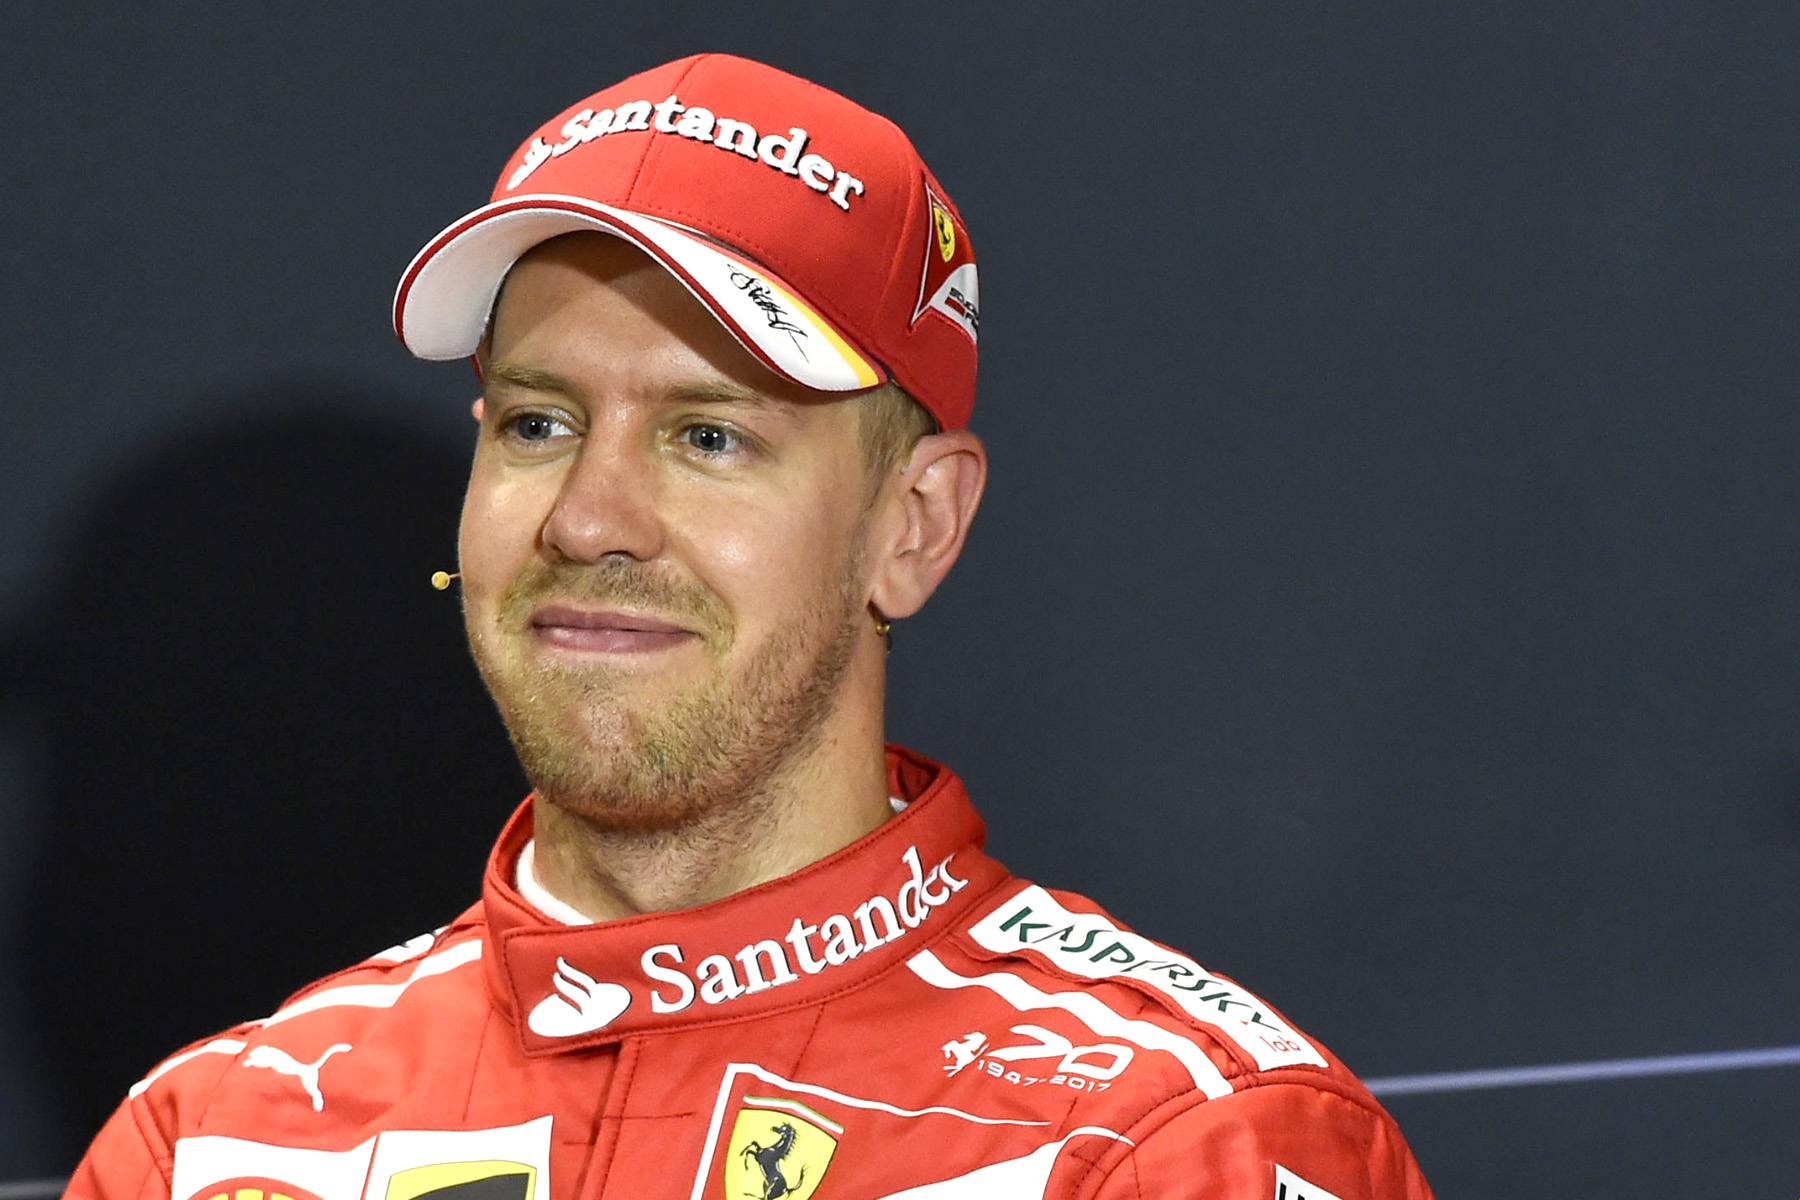 Sebastian Vettel grins in a press conference.